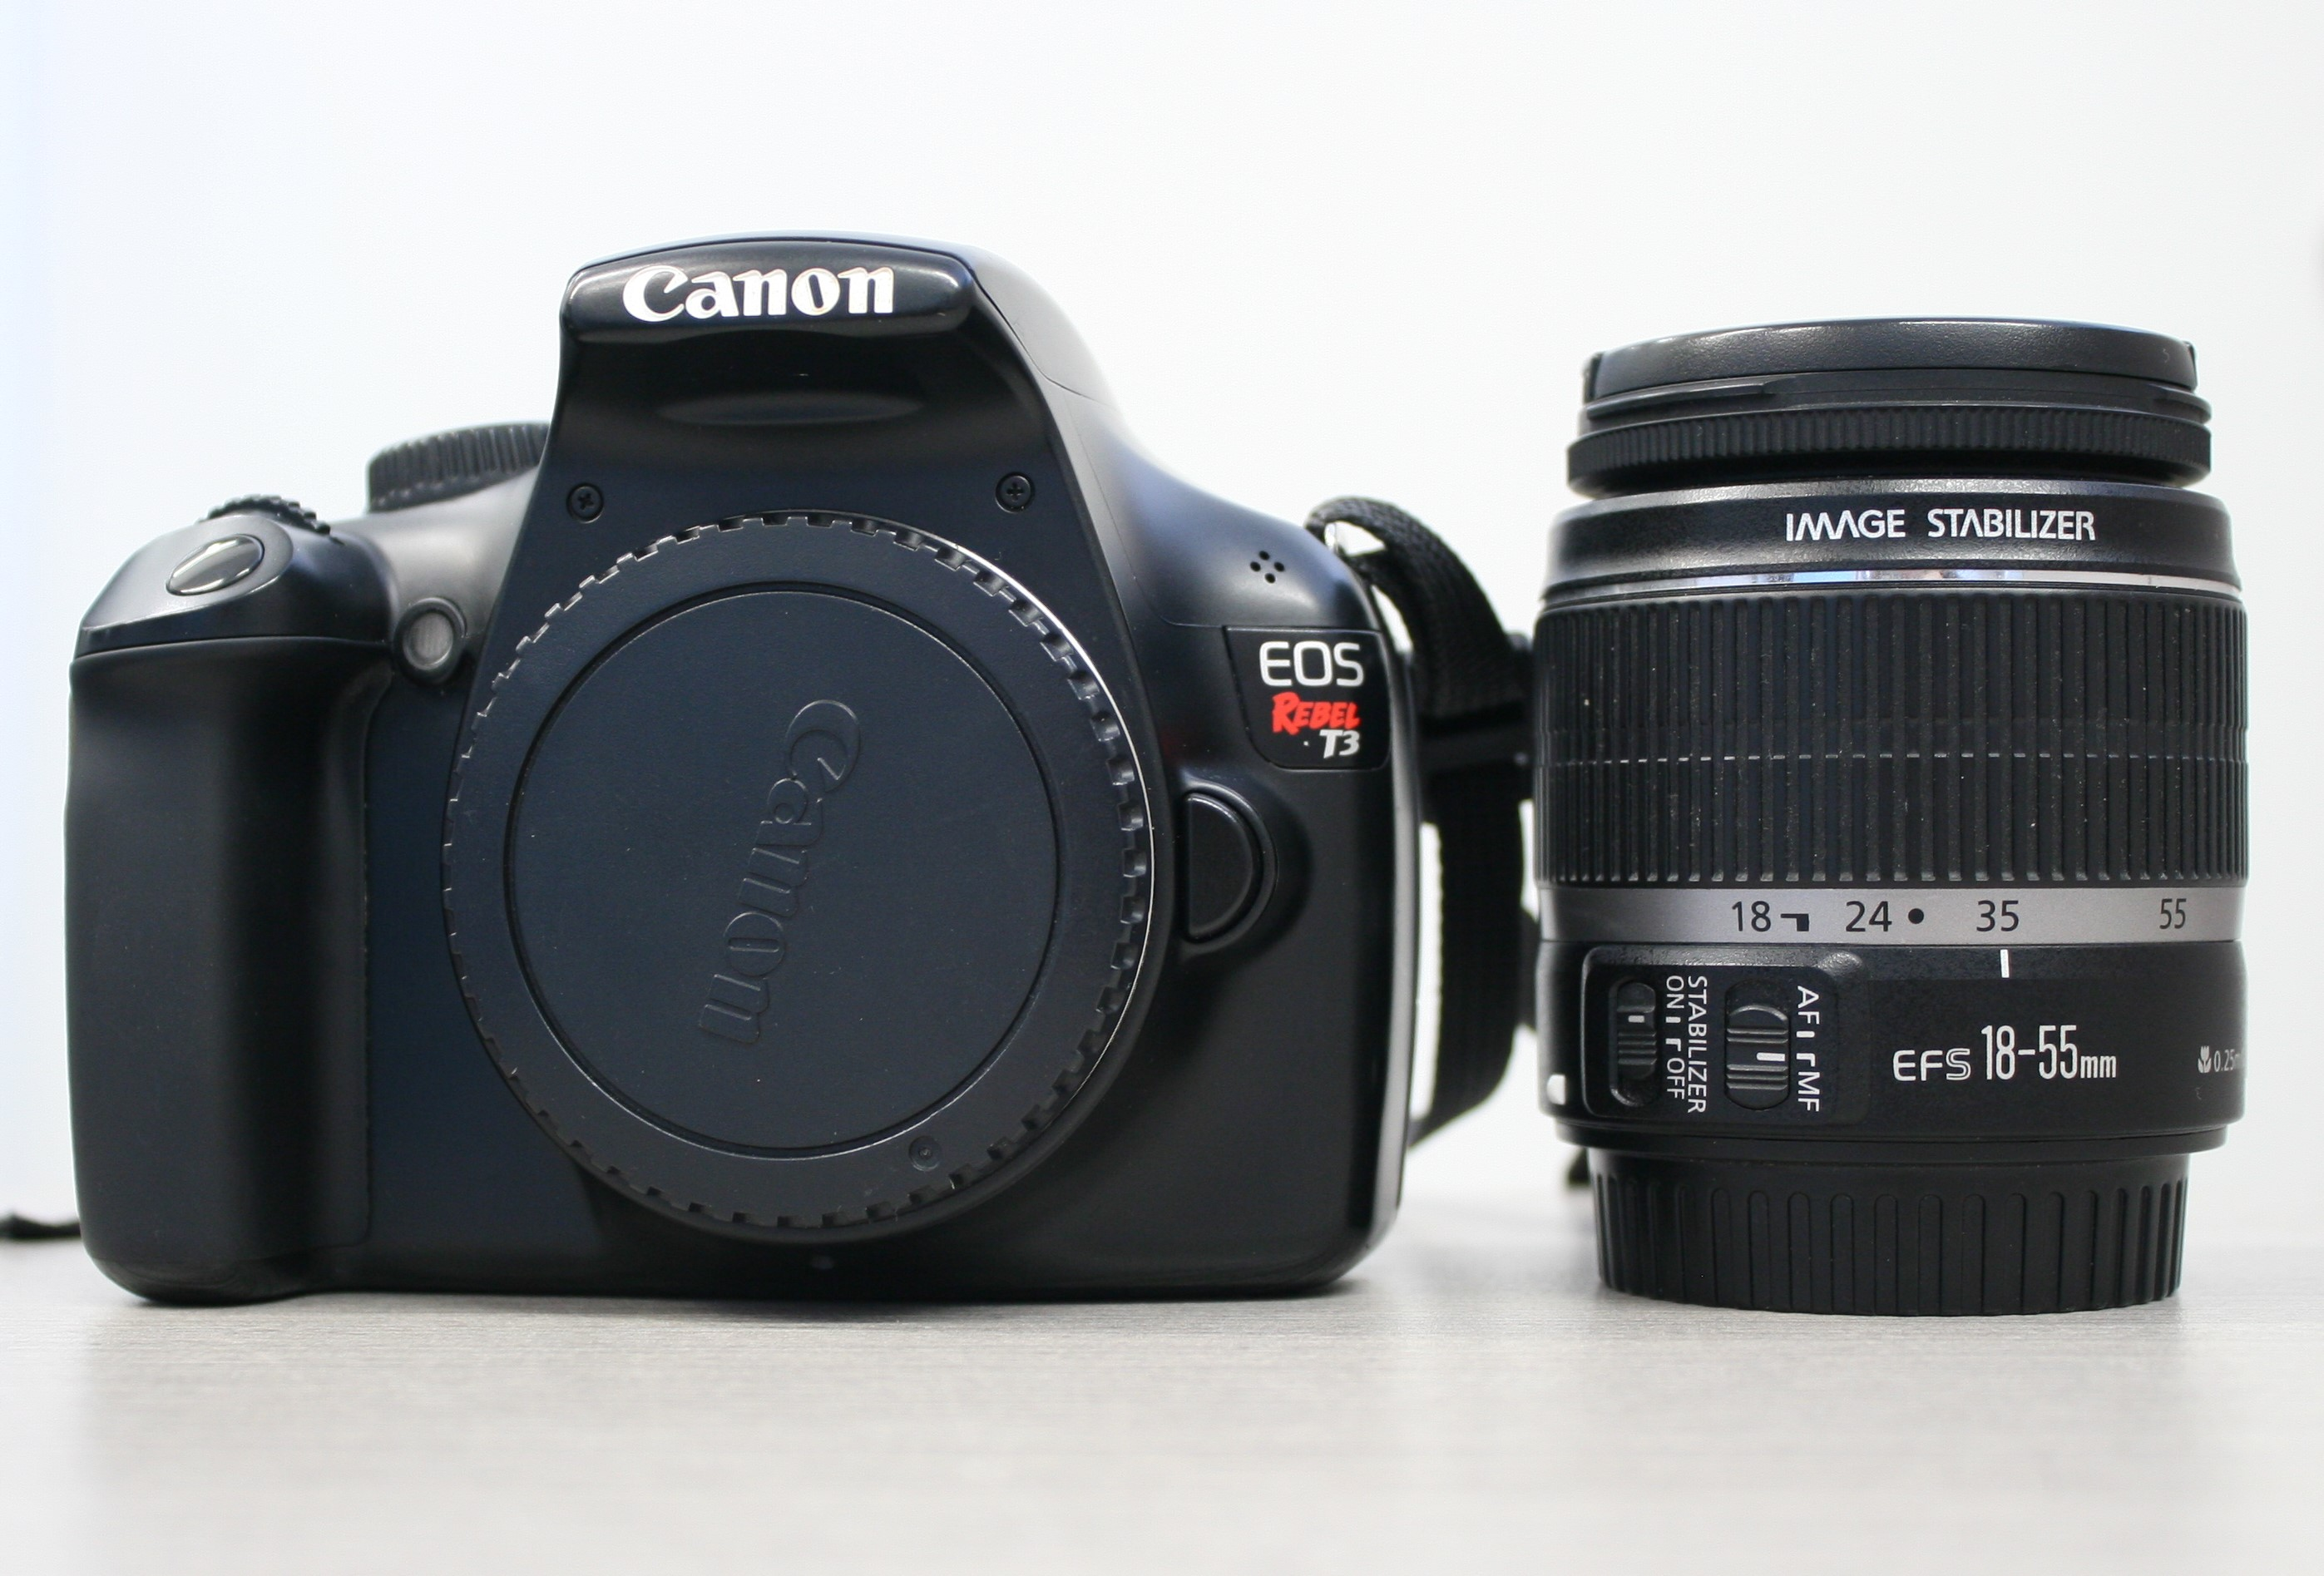 EOS Rebel T3 with 18-55mm Lens